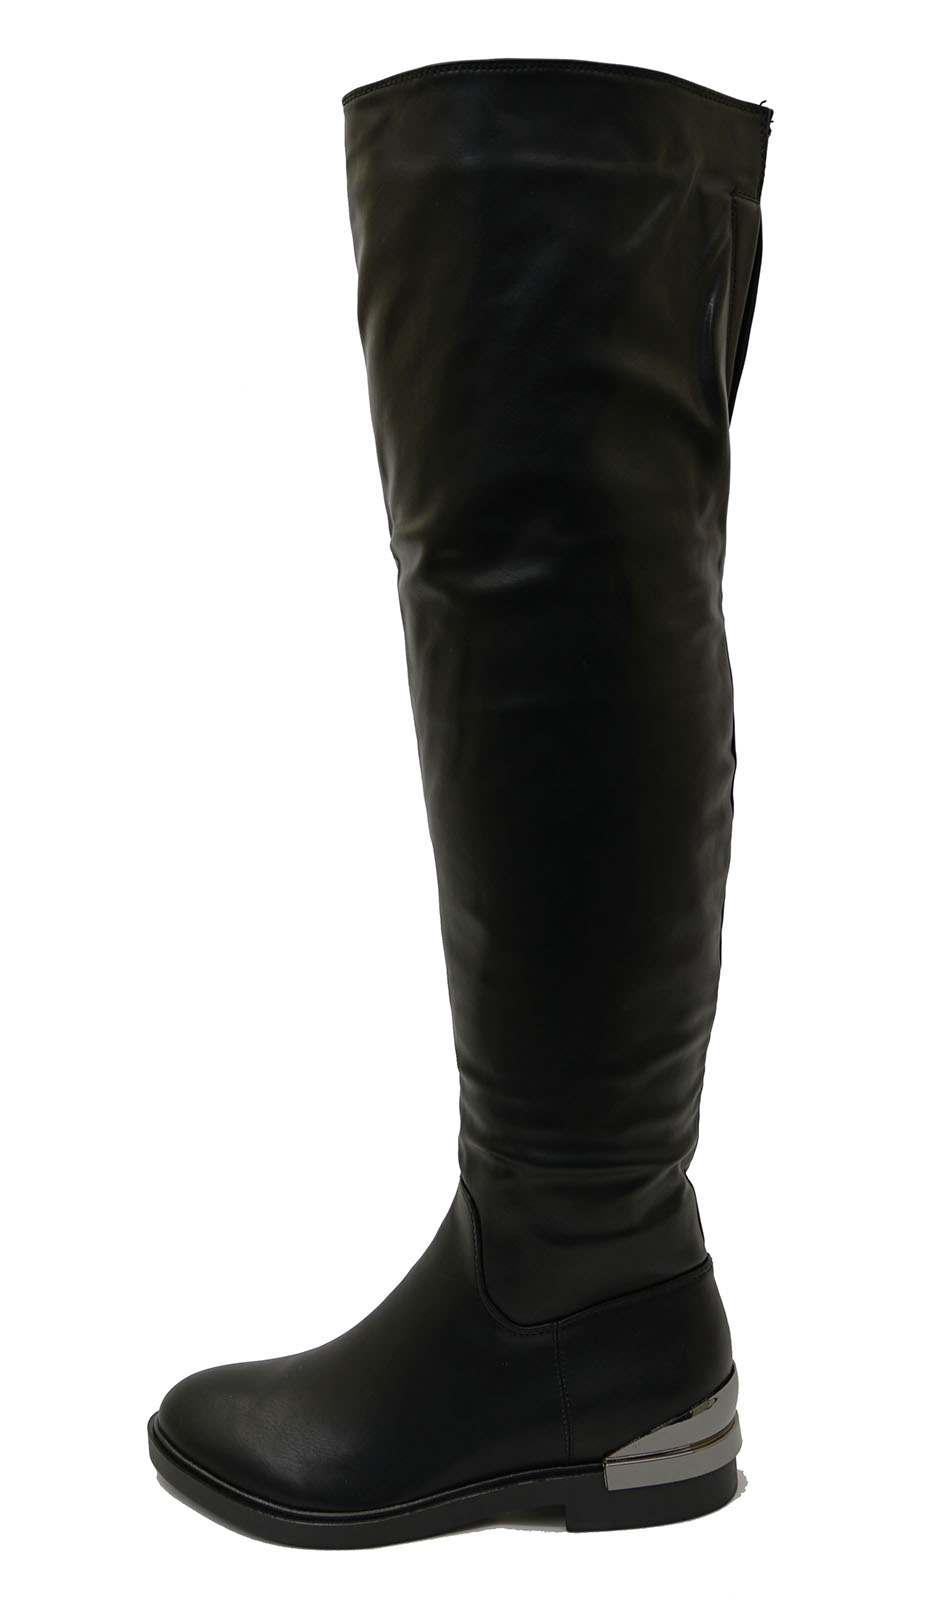 bea5646d80b6 Sentinel LADIES BLACK FLAT OVER THE KNEE HIGH TALL ZIP-UP RIDING WORK BOOTS  SHOES UK